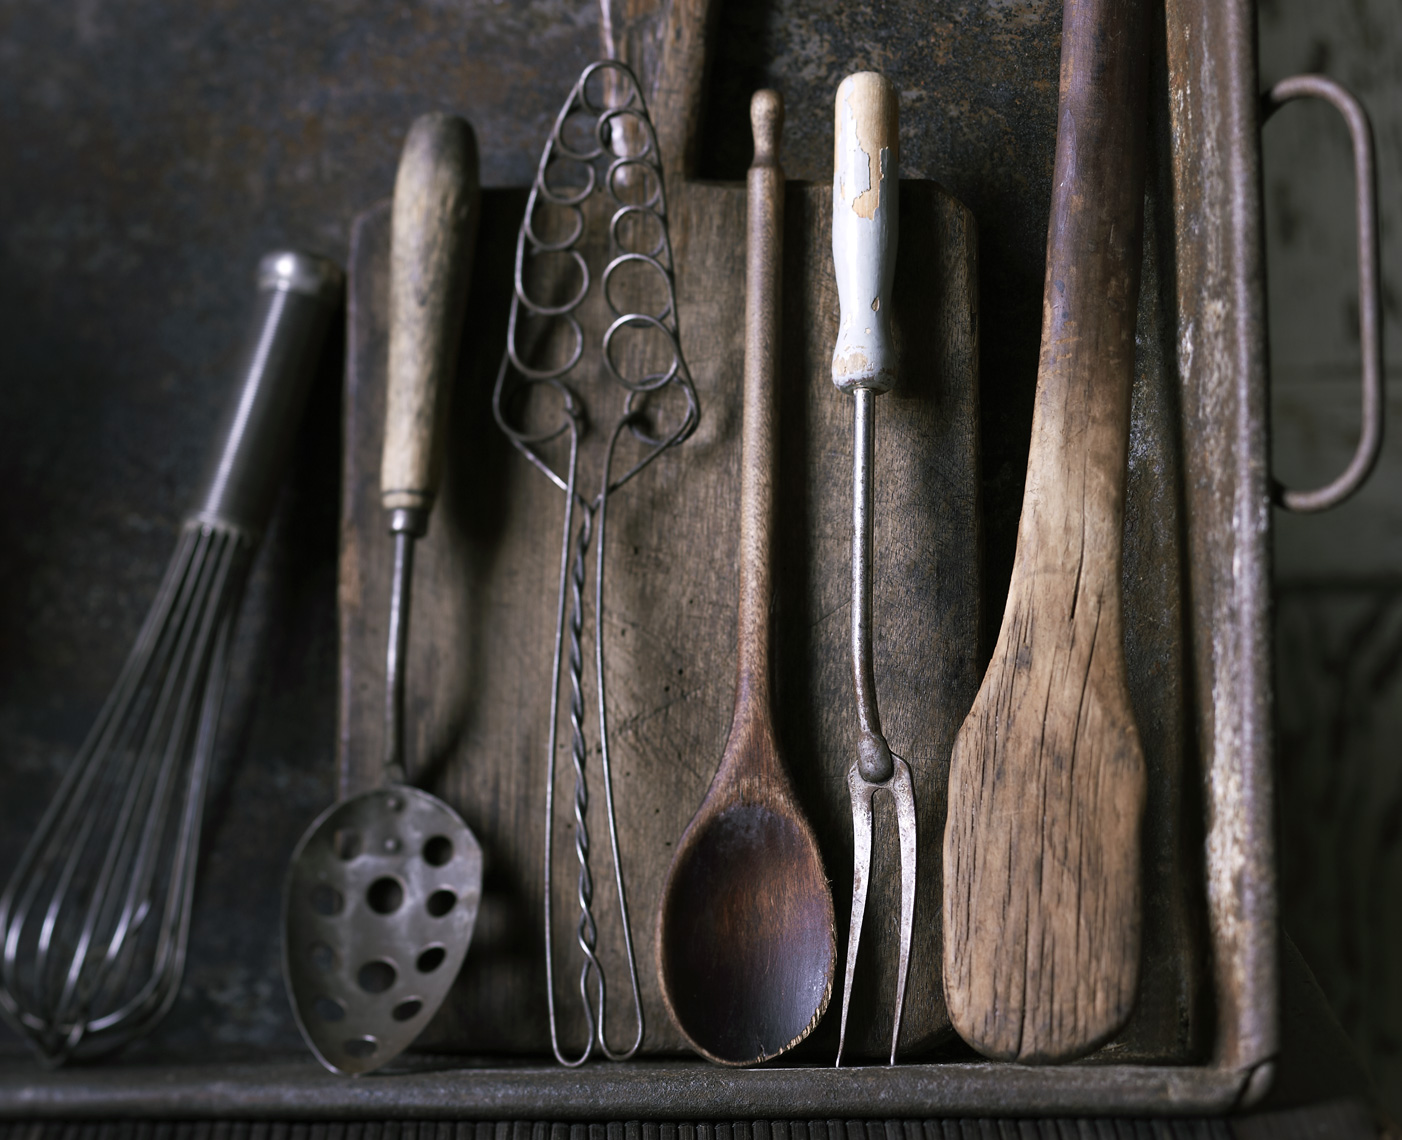 Antique Cooking Utensils Christopher Nastri